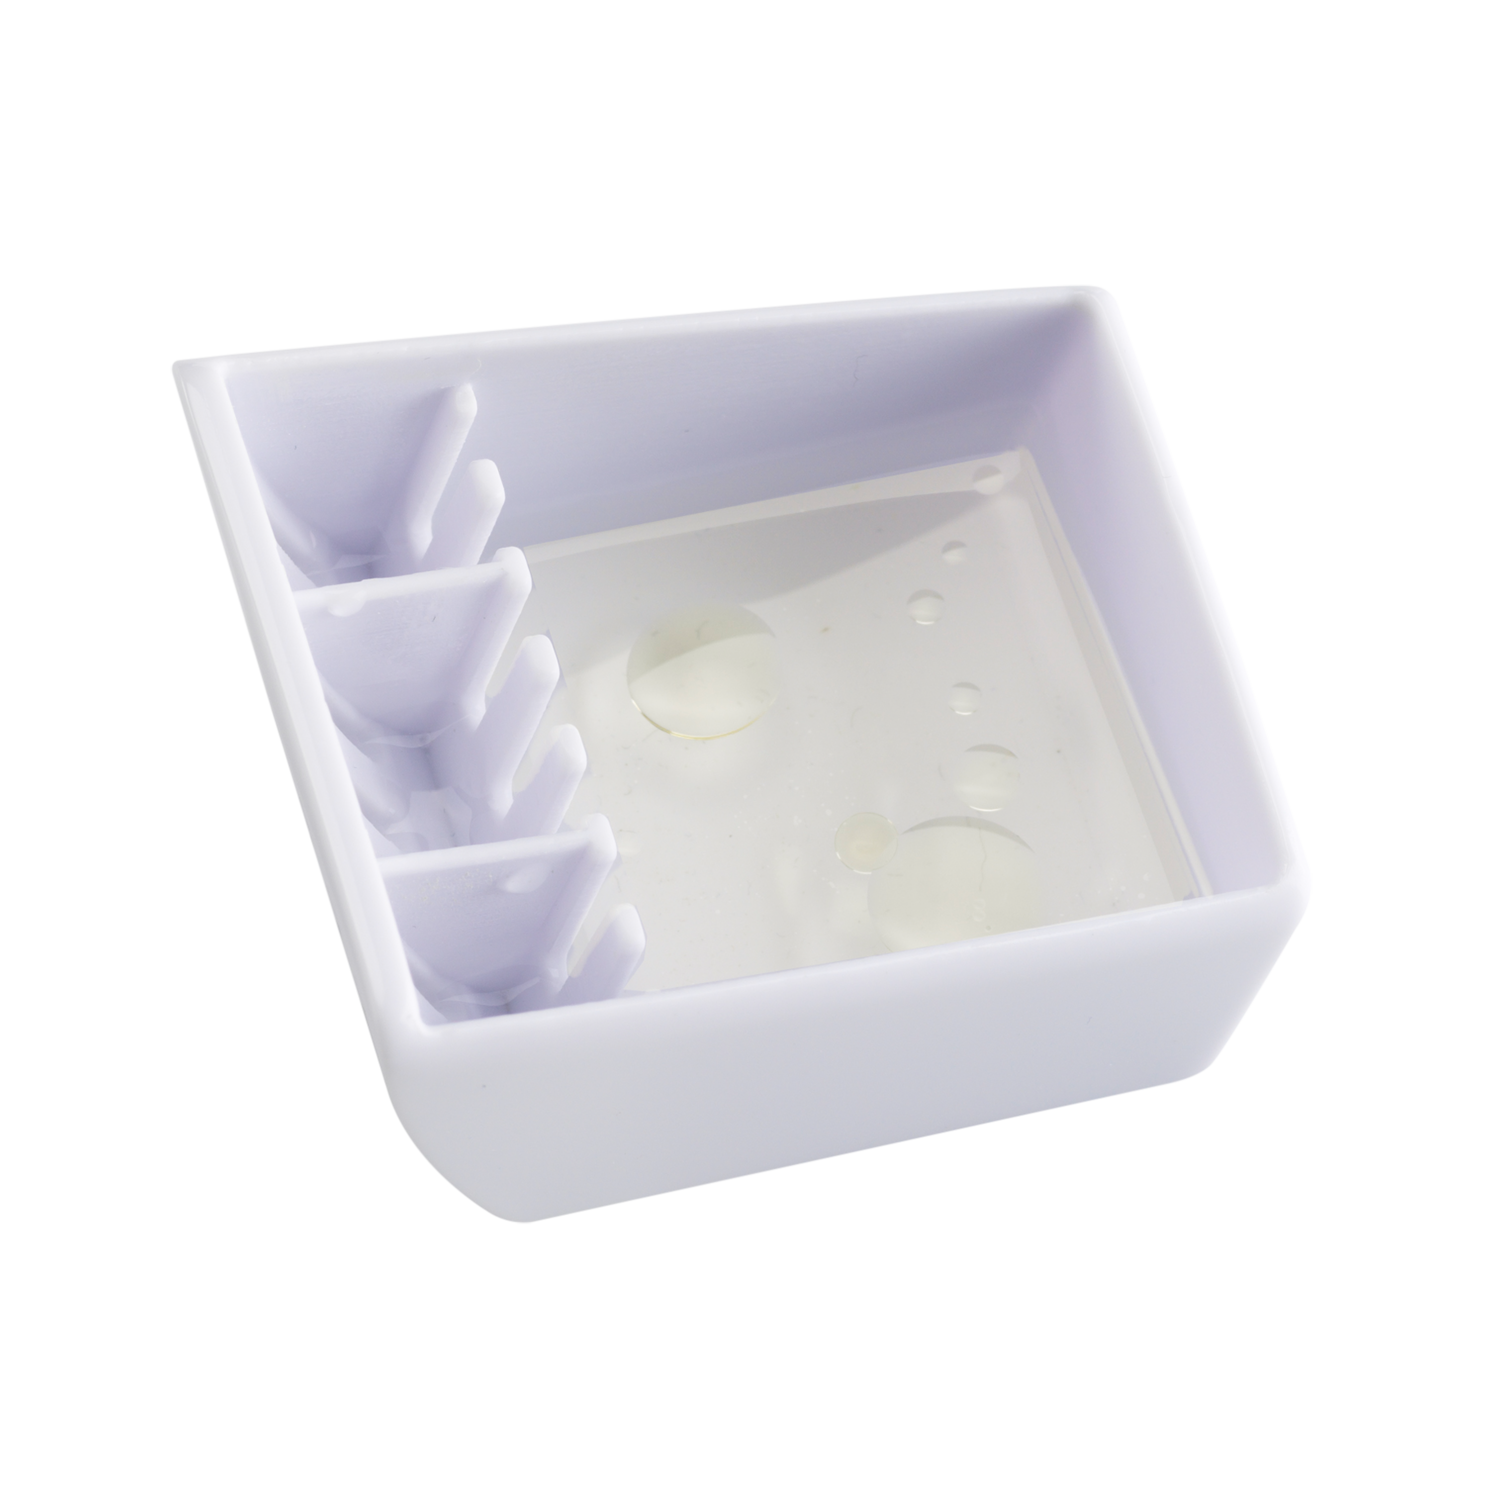 Fragrance Tray for Ultrasonic Humidifier U200